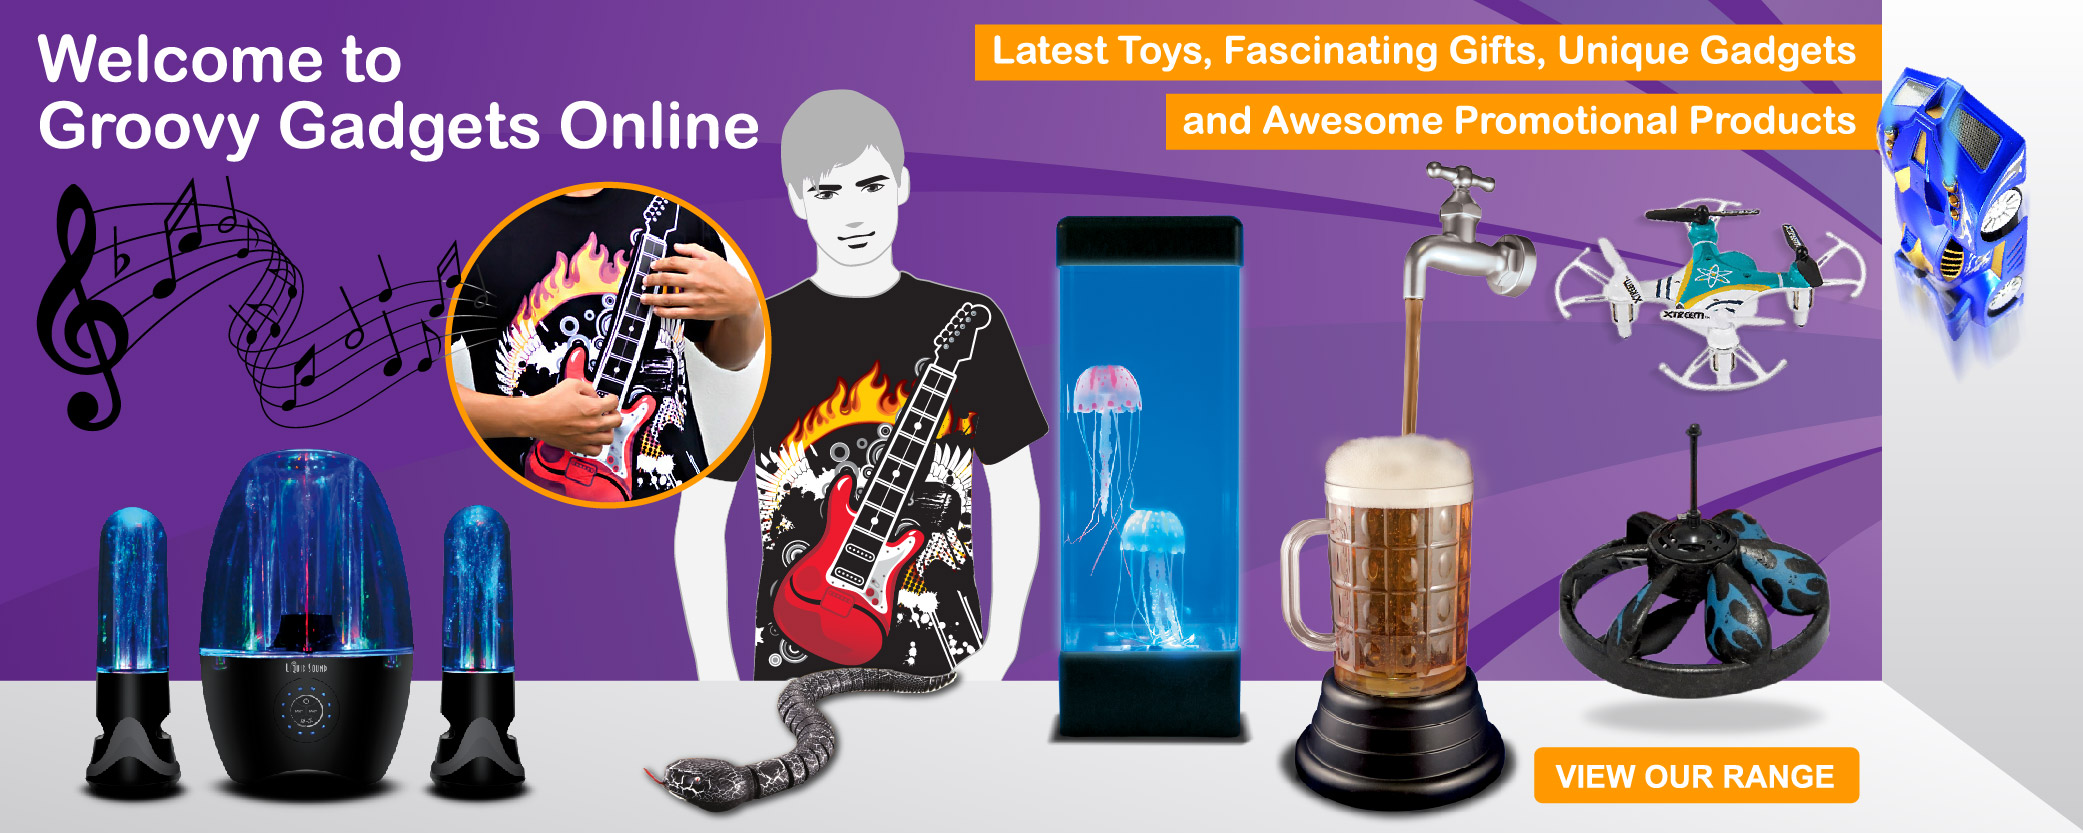 Welcome To Groovy Gadgets Online